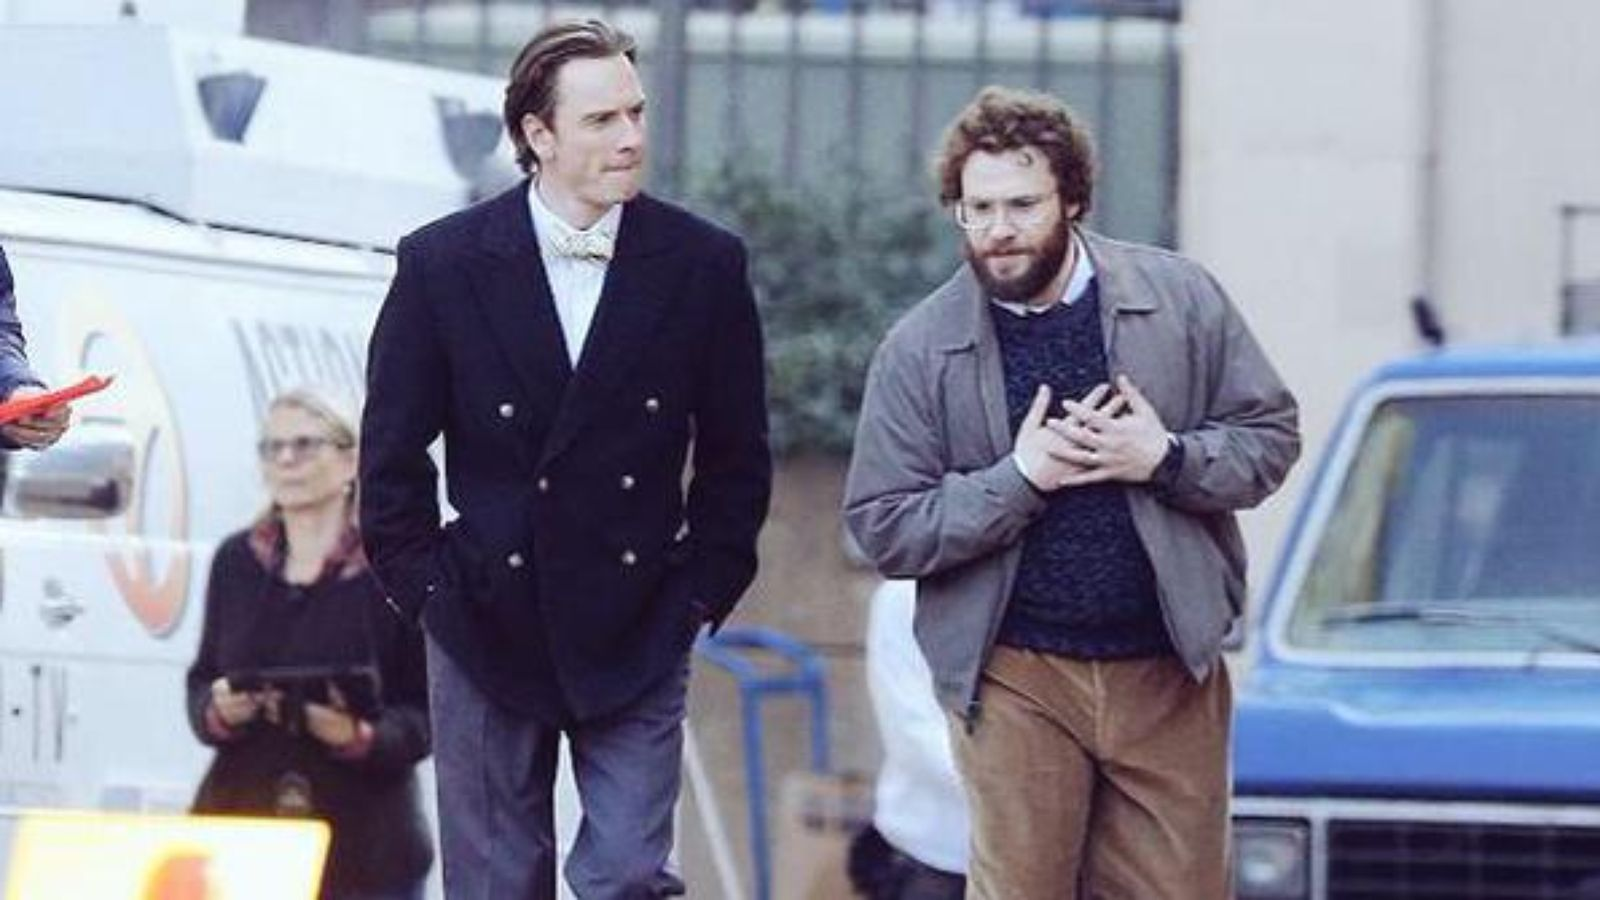 Your First Glimpse Of Fassbender And Rogen As Jobs And Wozniak